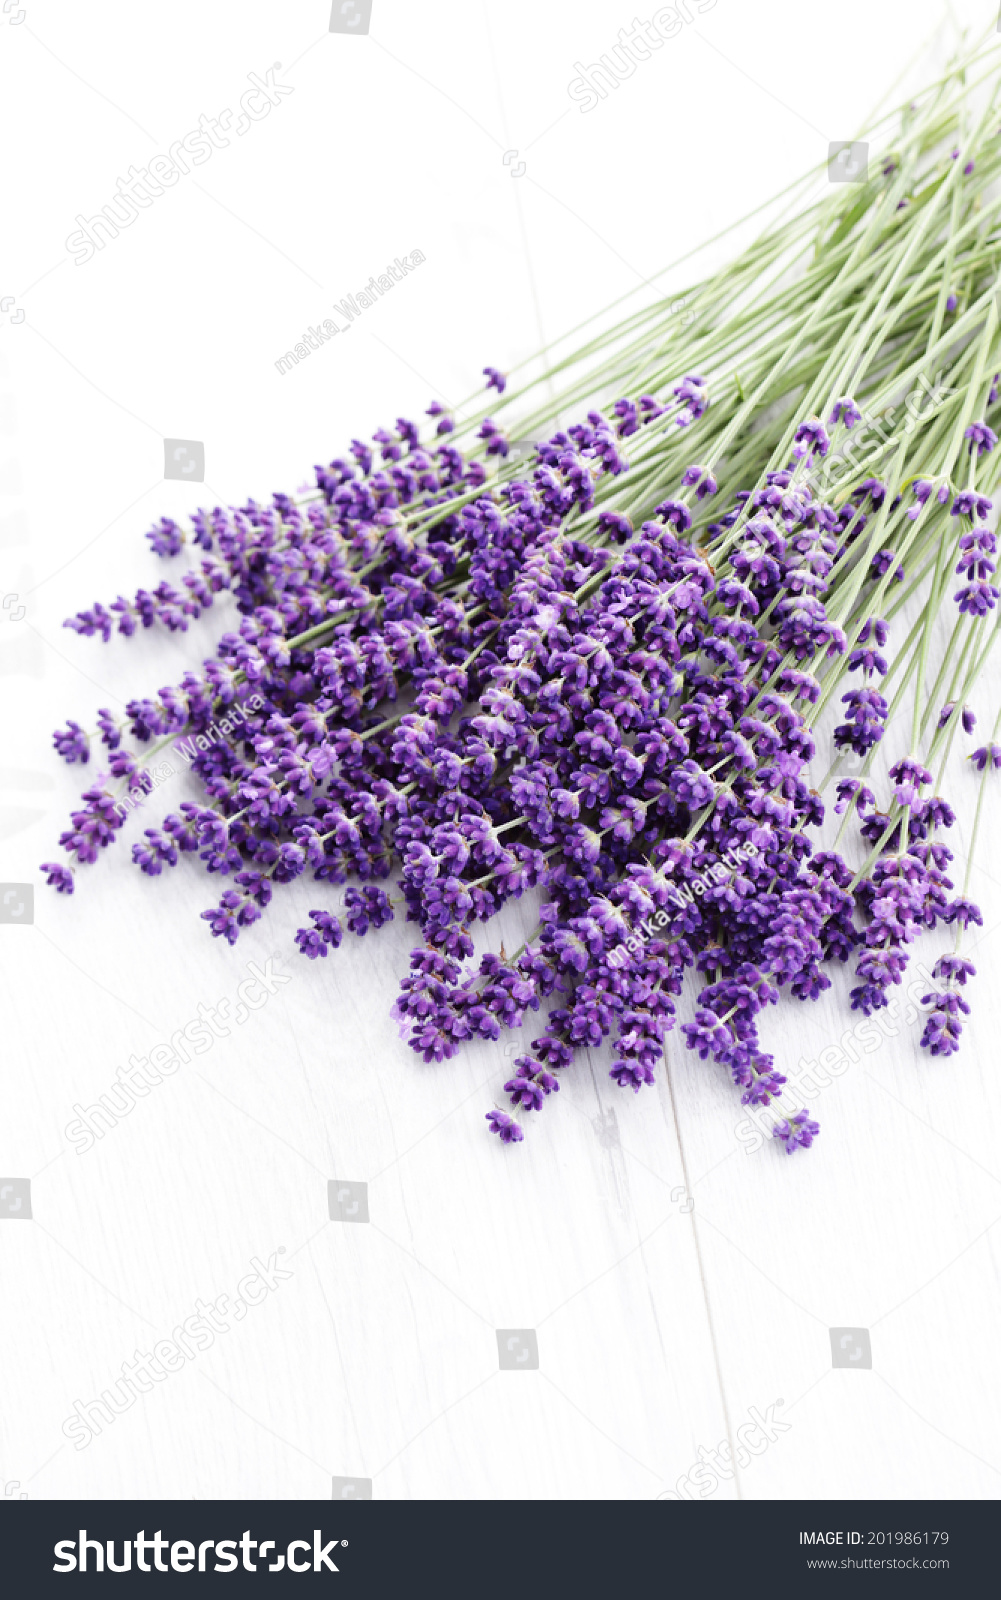 Bunch Of Lavender Flowers Isolated On White Flowers And Plants